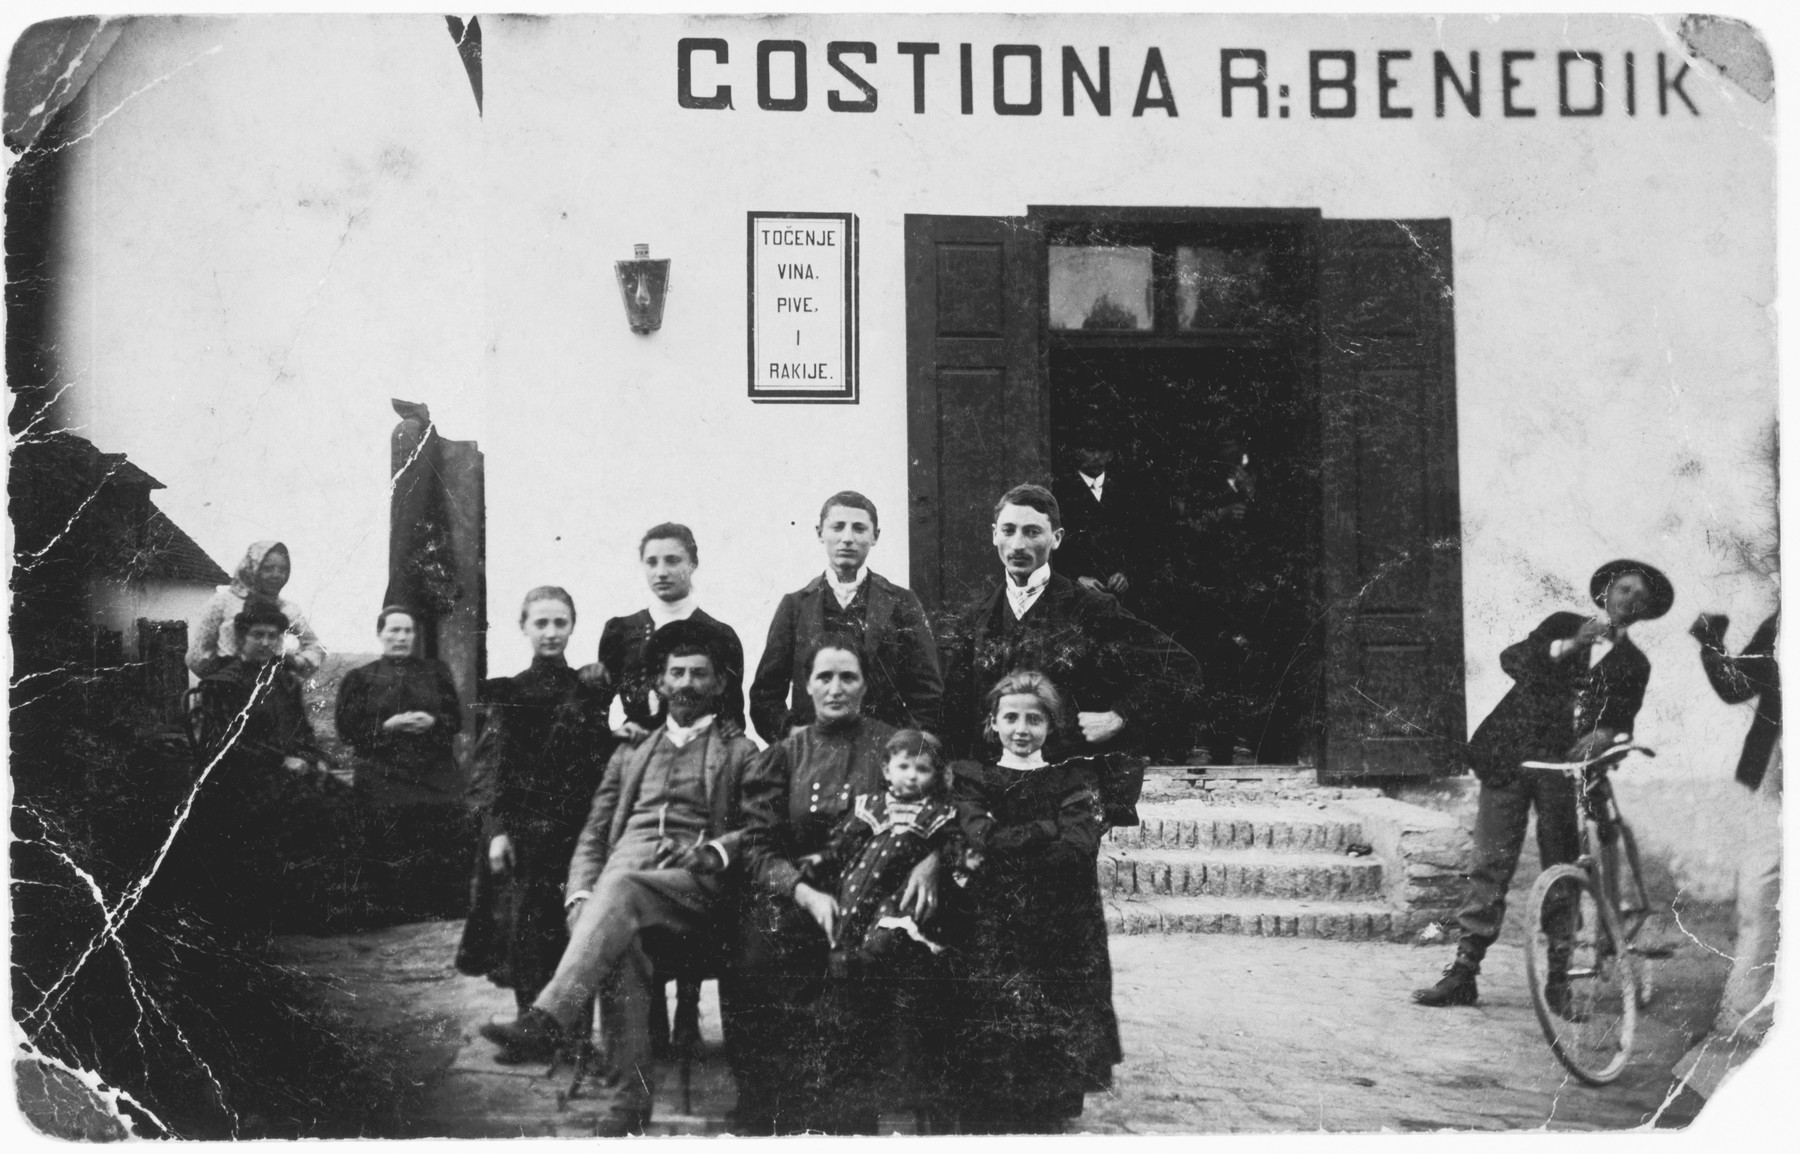 A Jewish family poses outside their inn in a small town in Croatia.  Pictured are the Benedik family.  Zora is sitting on the lap of her mother, Rosa Benedik.  Standing to her right is her sister Victoria.  In the back row are her siblings Irena, Giza, Ziga and Joseph.